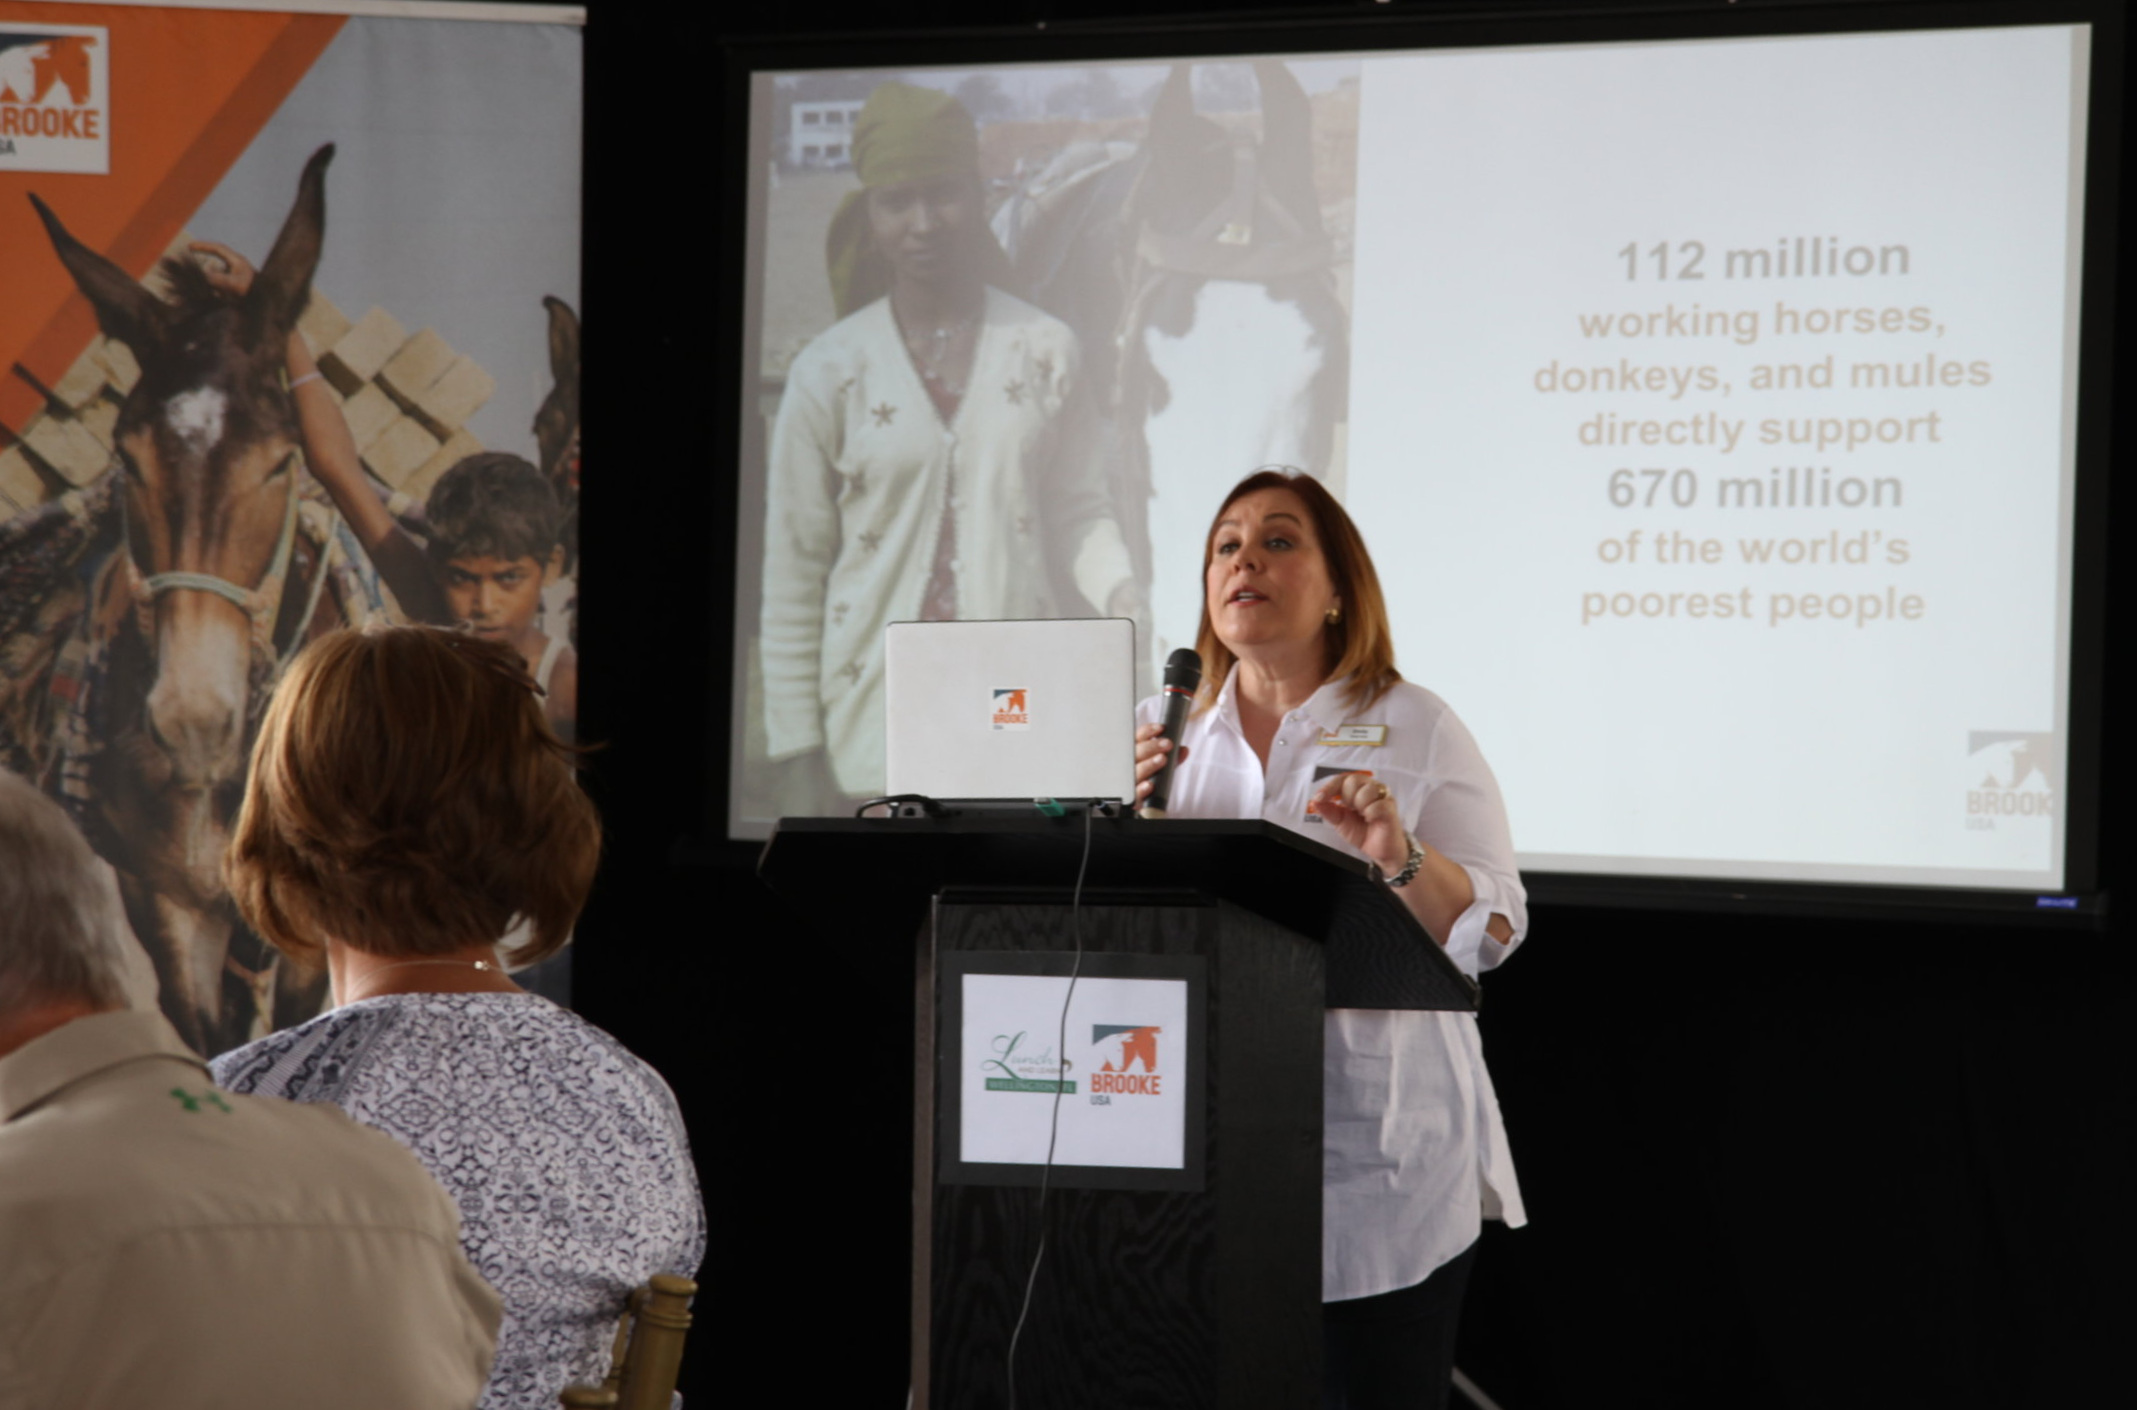 Emily Dulin, executive director of Brooke USA, speaks to the attendees. Photo by EQ Media